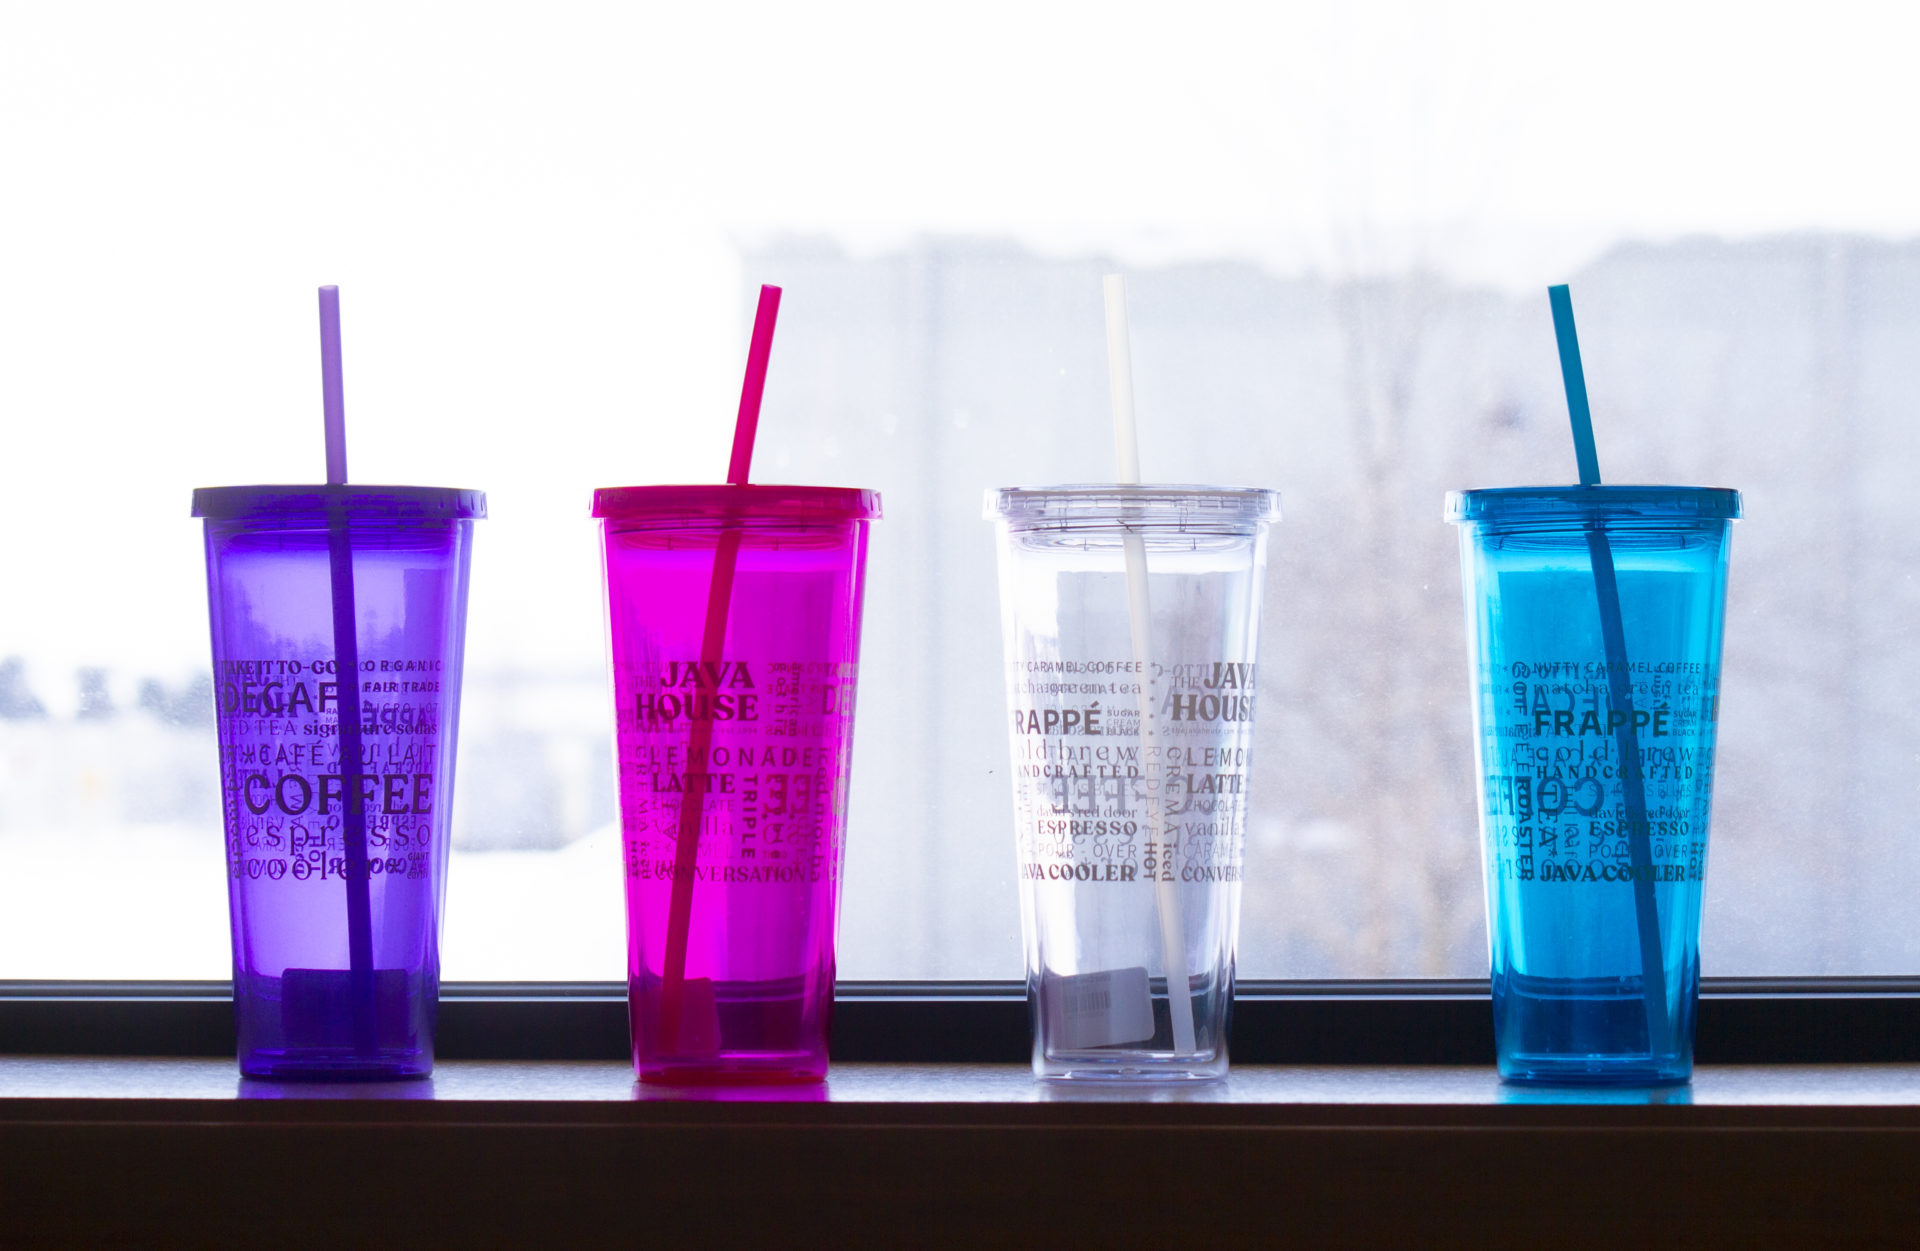 4 translucent tumblers in a window sill, they are purple, pink, clear, and blue.